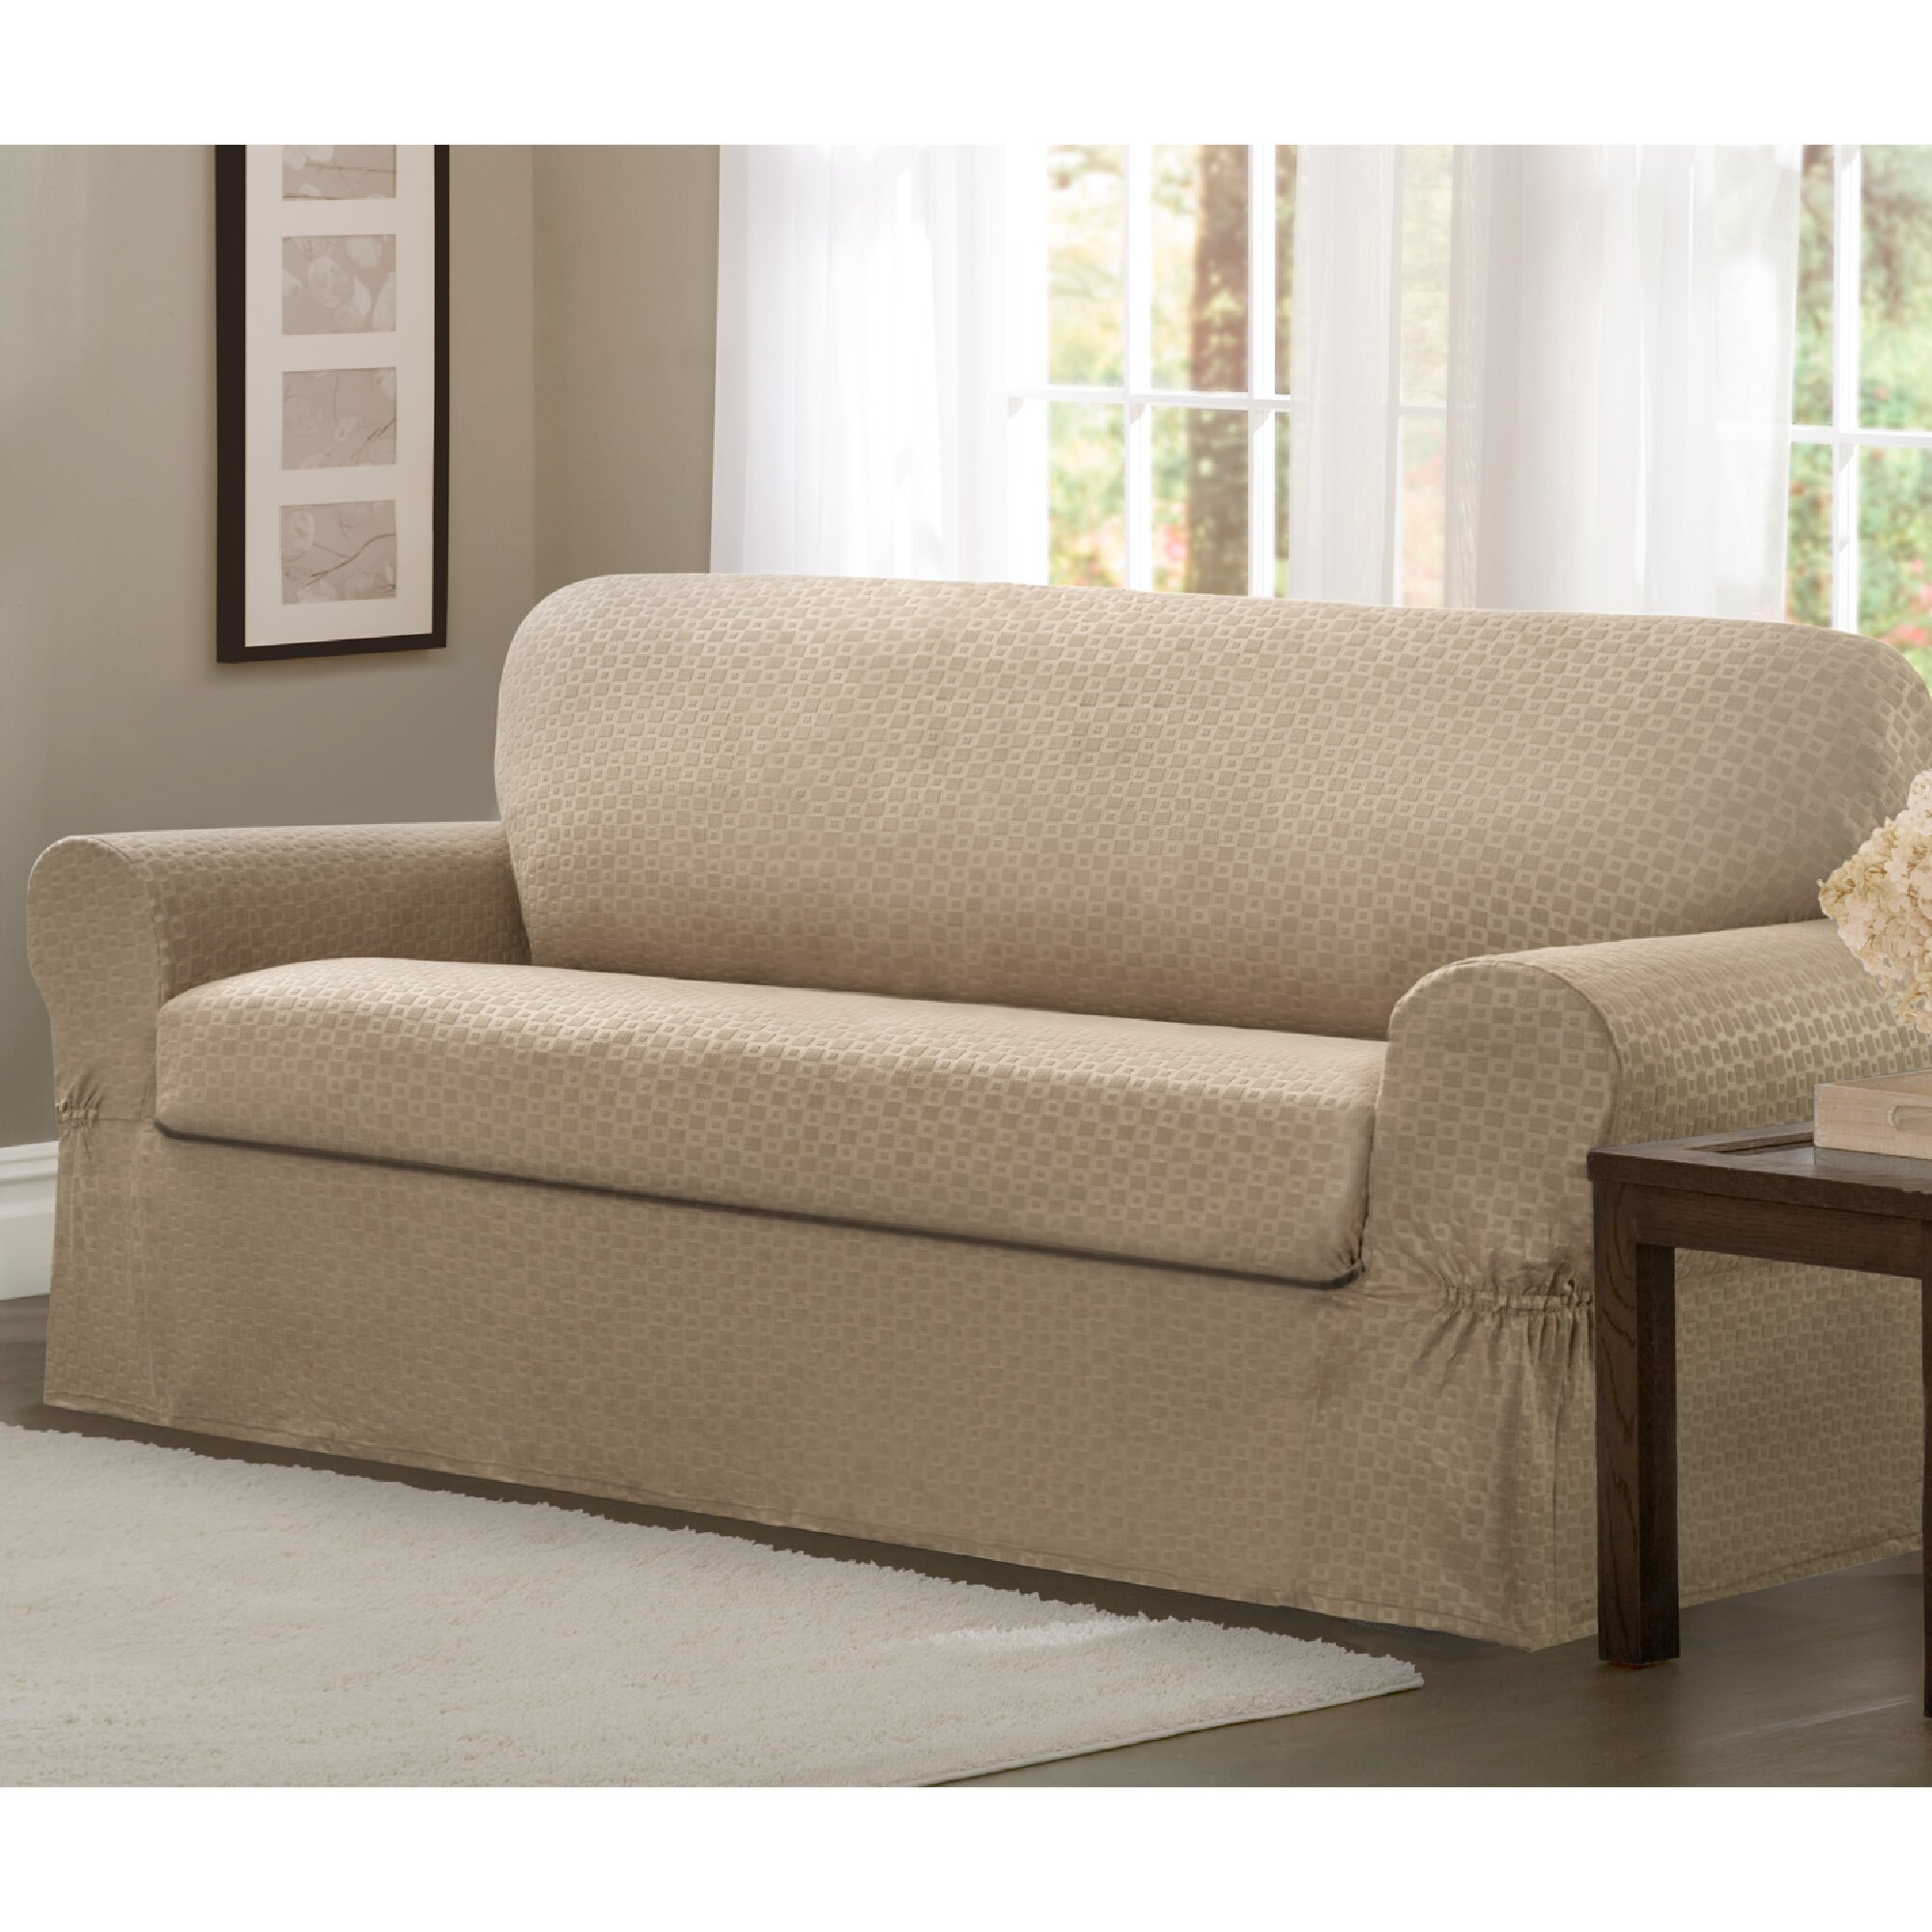 Conrad stretch 2 piece loveseat box cushion slipcover set wayfair Loveseat t cushion slipcovers